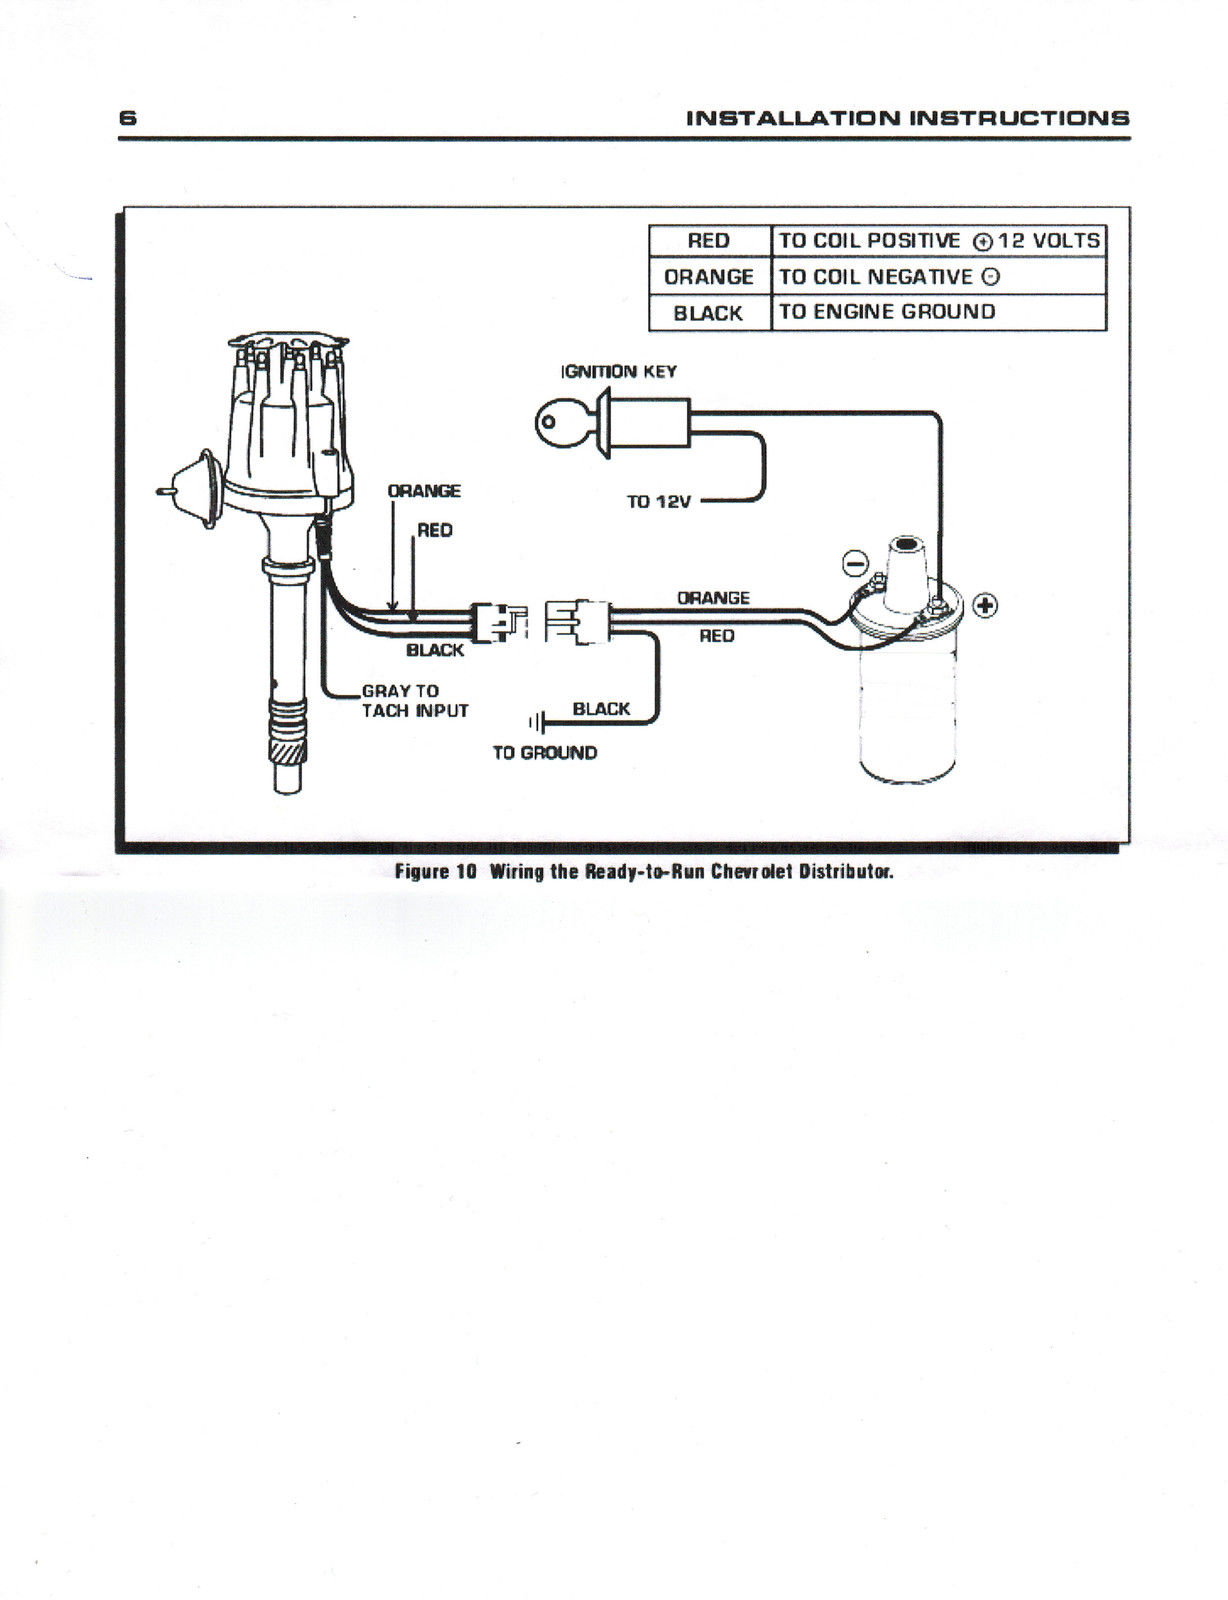 small cap FORD 5.0L 302 EFI to Carb Conversion HEI Distributor ... on mallory promaster coil wiring diagram, mallory 6100m ignition, mallory msd 6al wiring-diagram, mallory electronic ignition coil wire diagram, mallory motor timing diagram, mallory dist wiring-diagram, mallory electronic ignition triggering devices, mallory mag wiring-diagram,